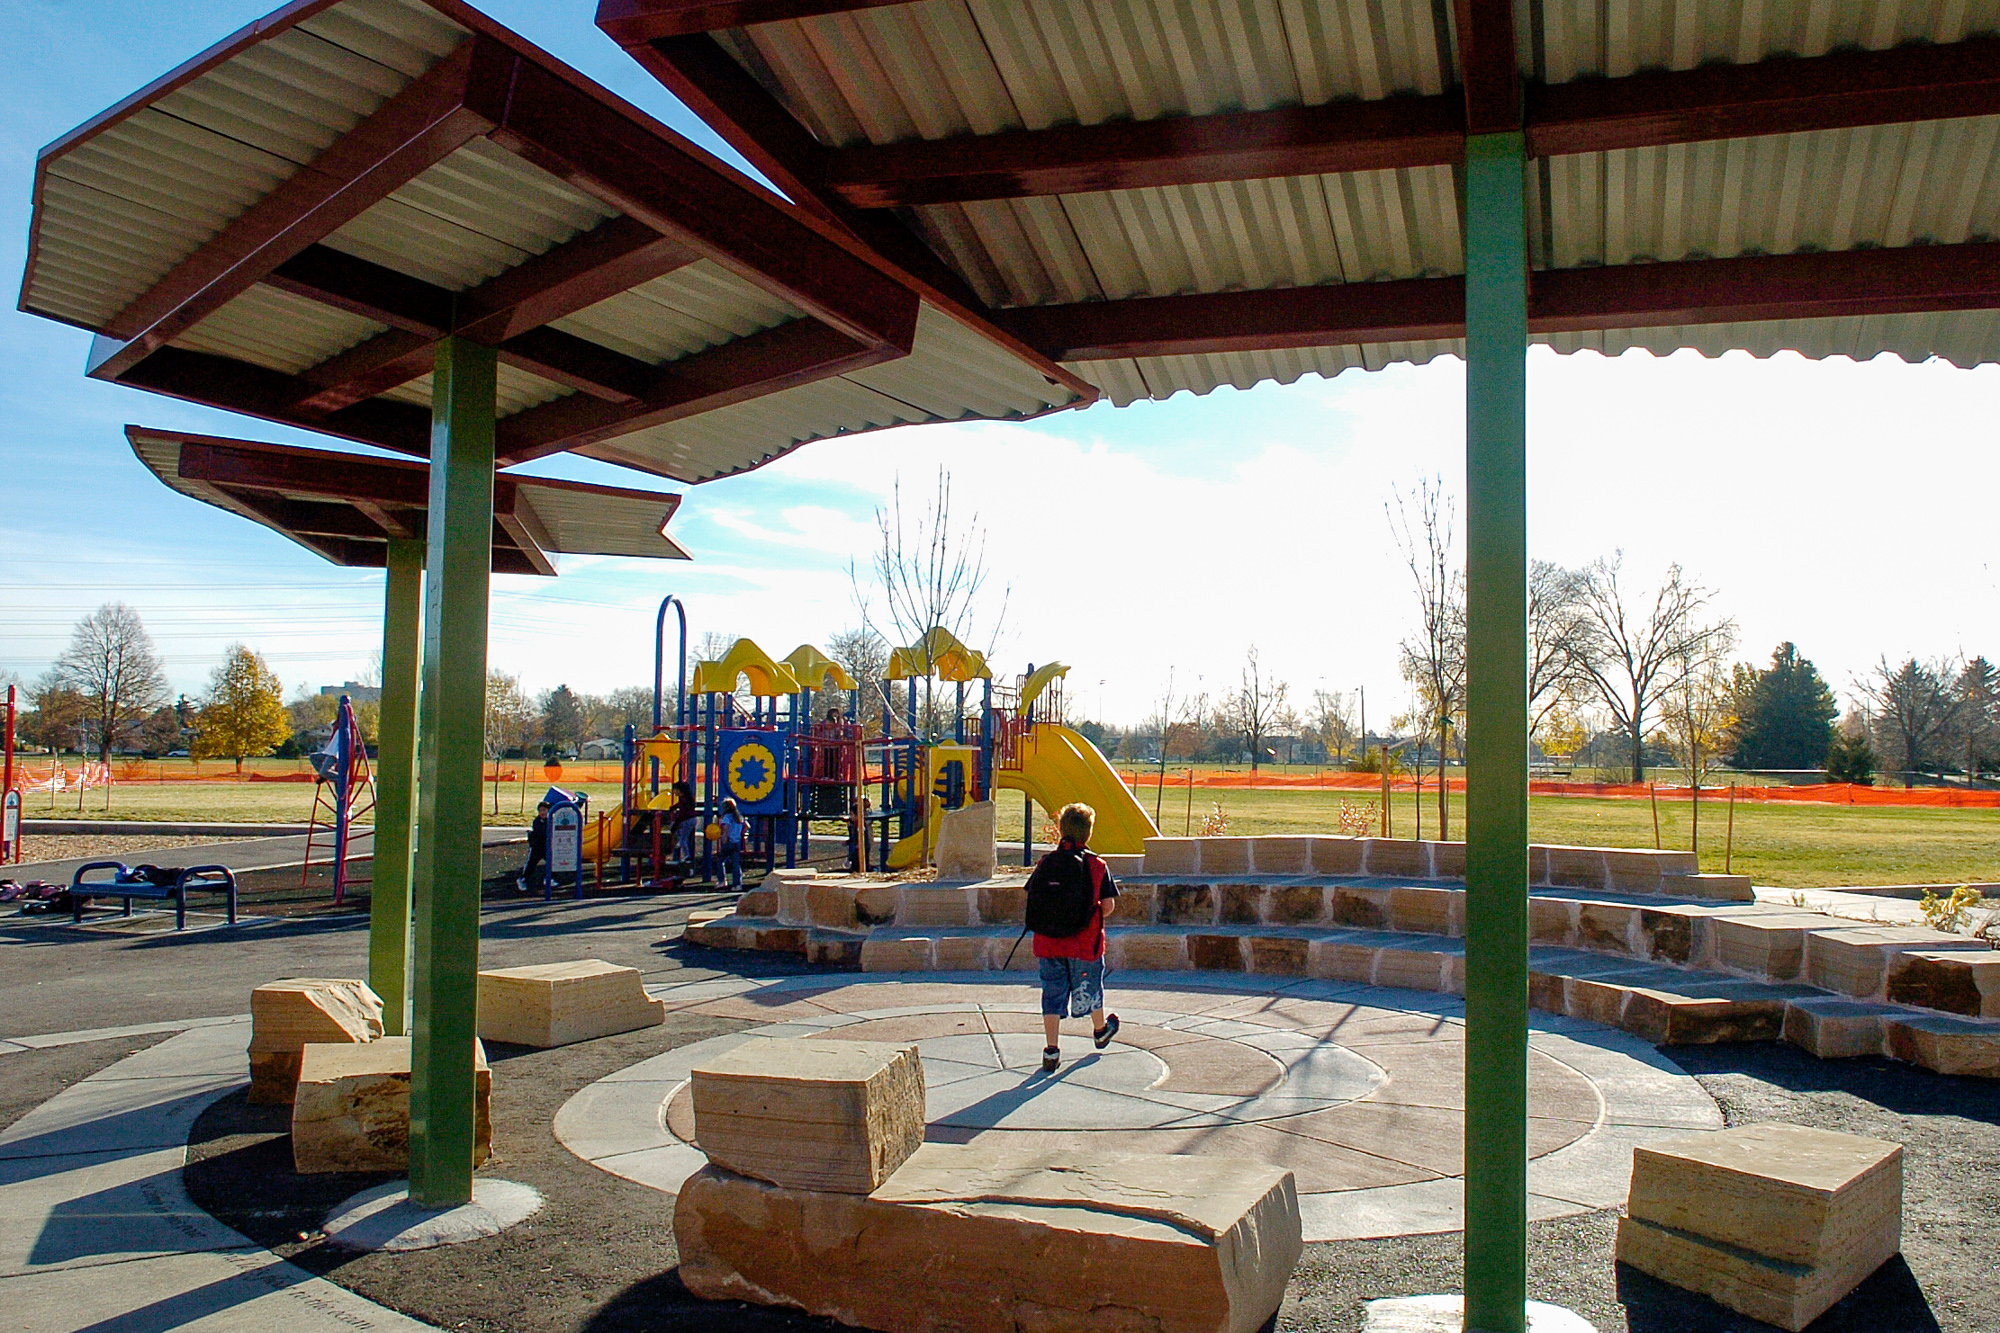 School playground learning landscape shelter outdoor classroom